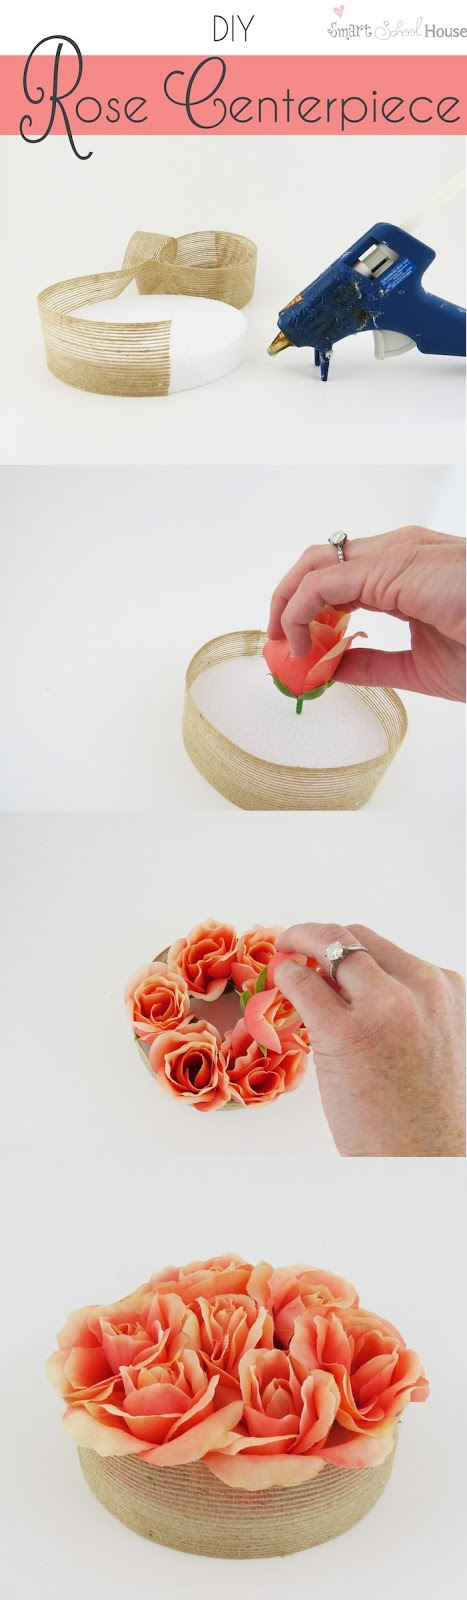 Rose peça central # DIY